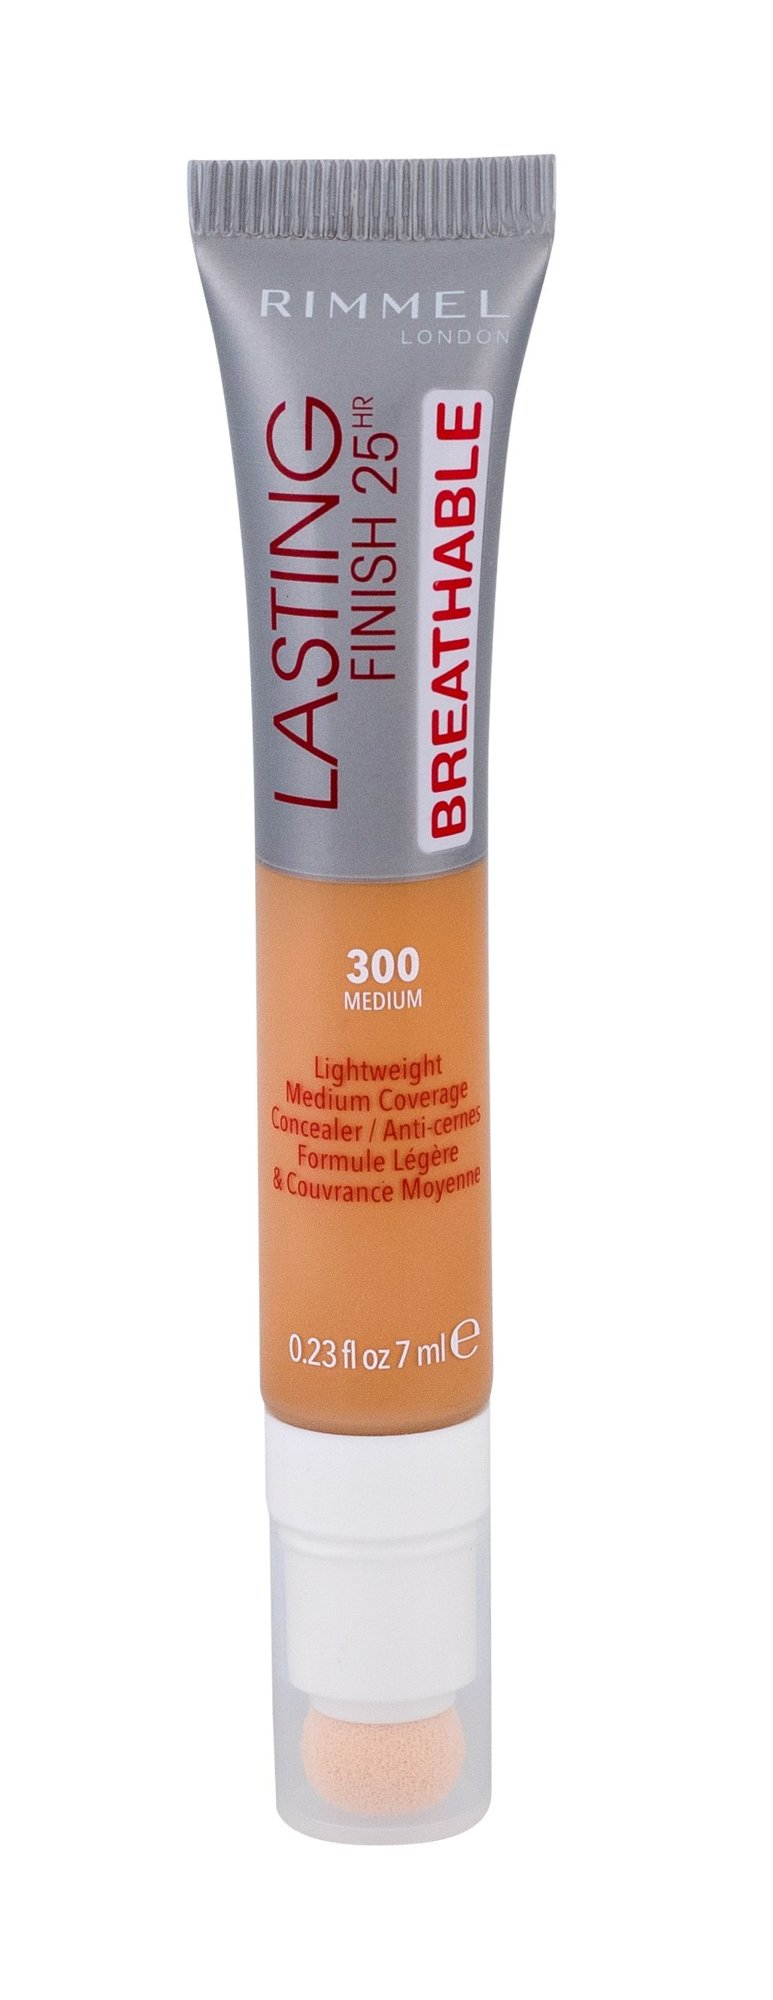 Rimmel London Lasting Finish Corrector 7ml 300 Medium